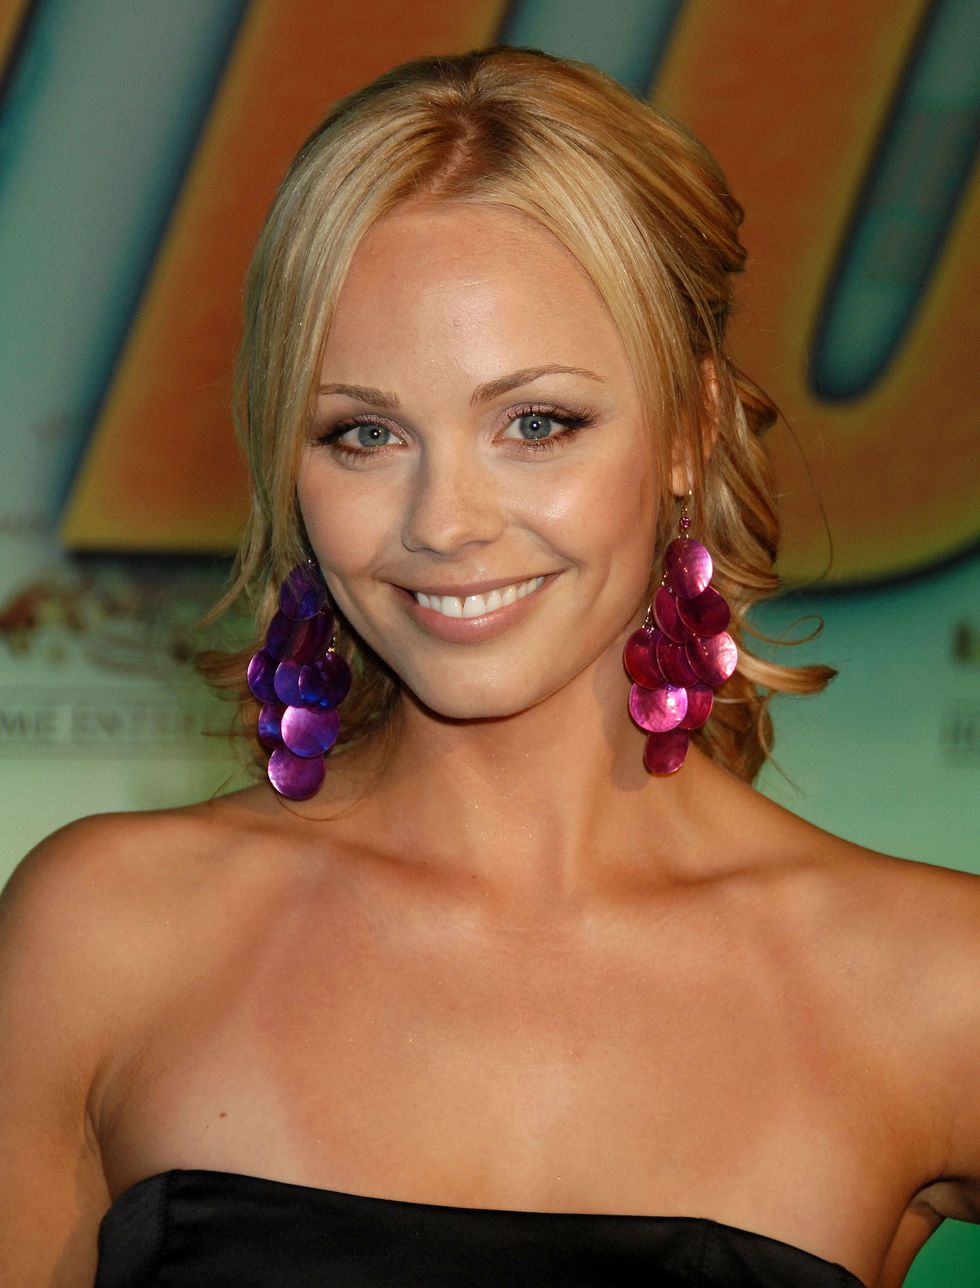 laura-vandervoort-into-the-blue-2-the-reef-premiere-in-beverly-hills-07